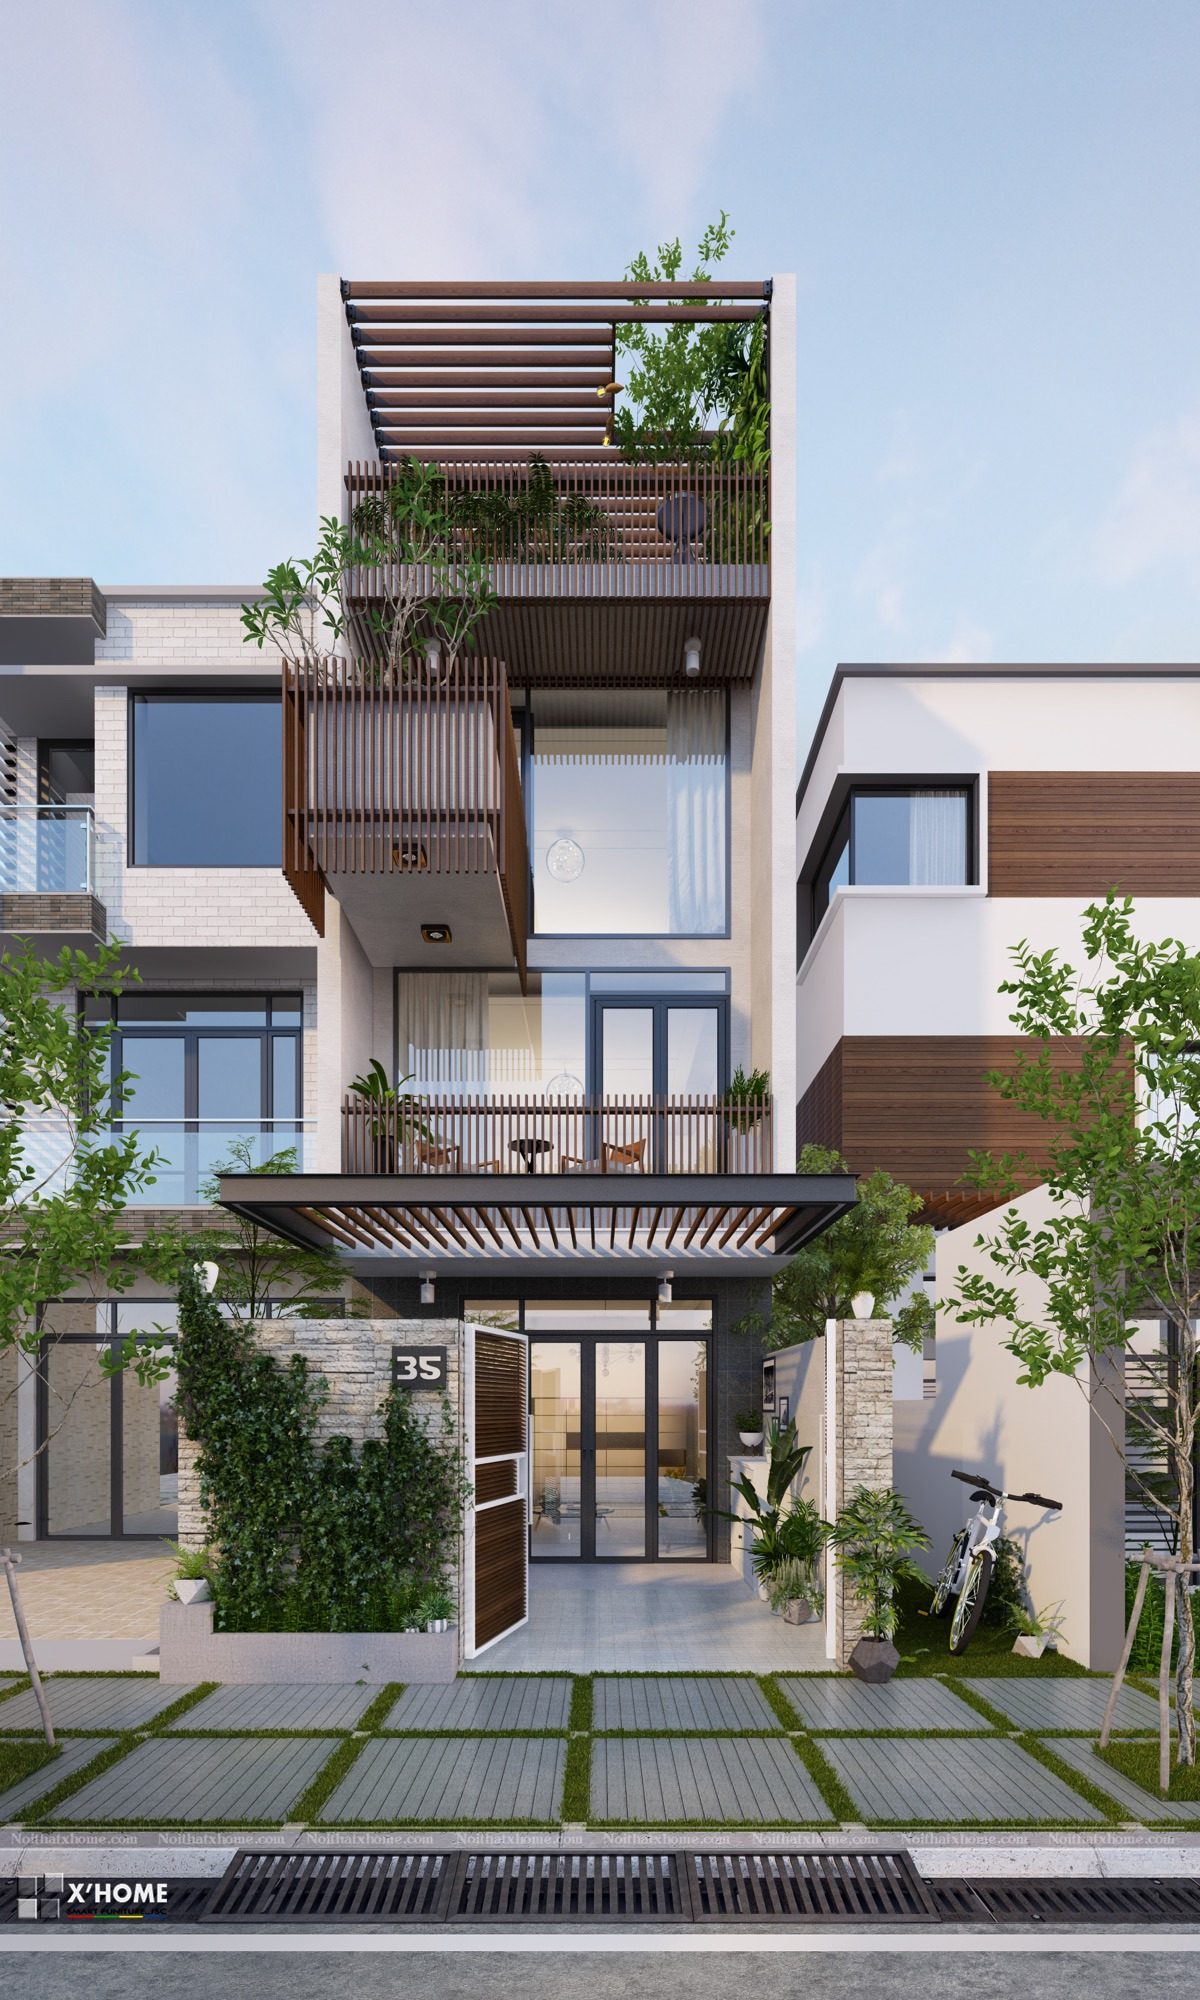 The Best Looking Houses Elegant 50 Narrow Lot Houses that Transform A Skinny Exterior Into